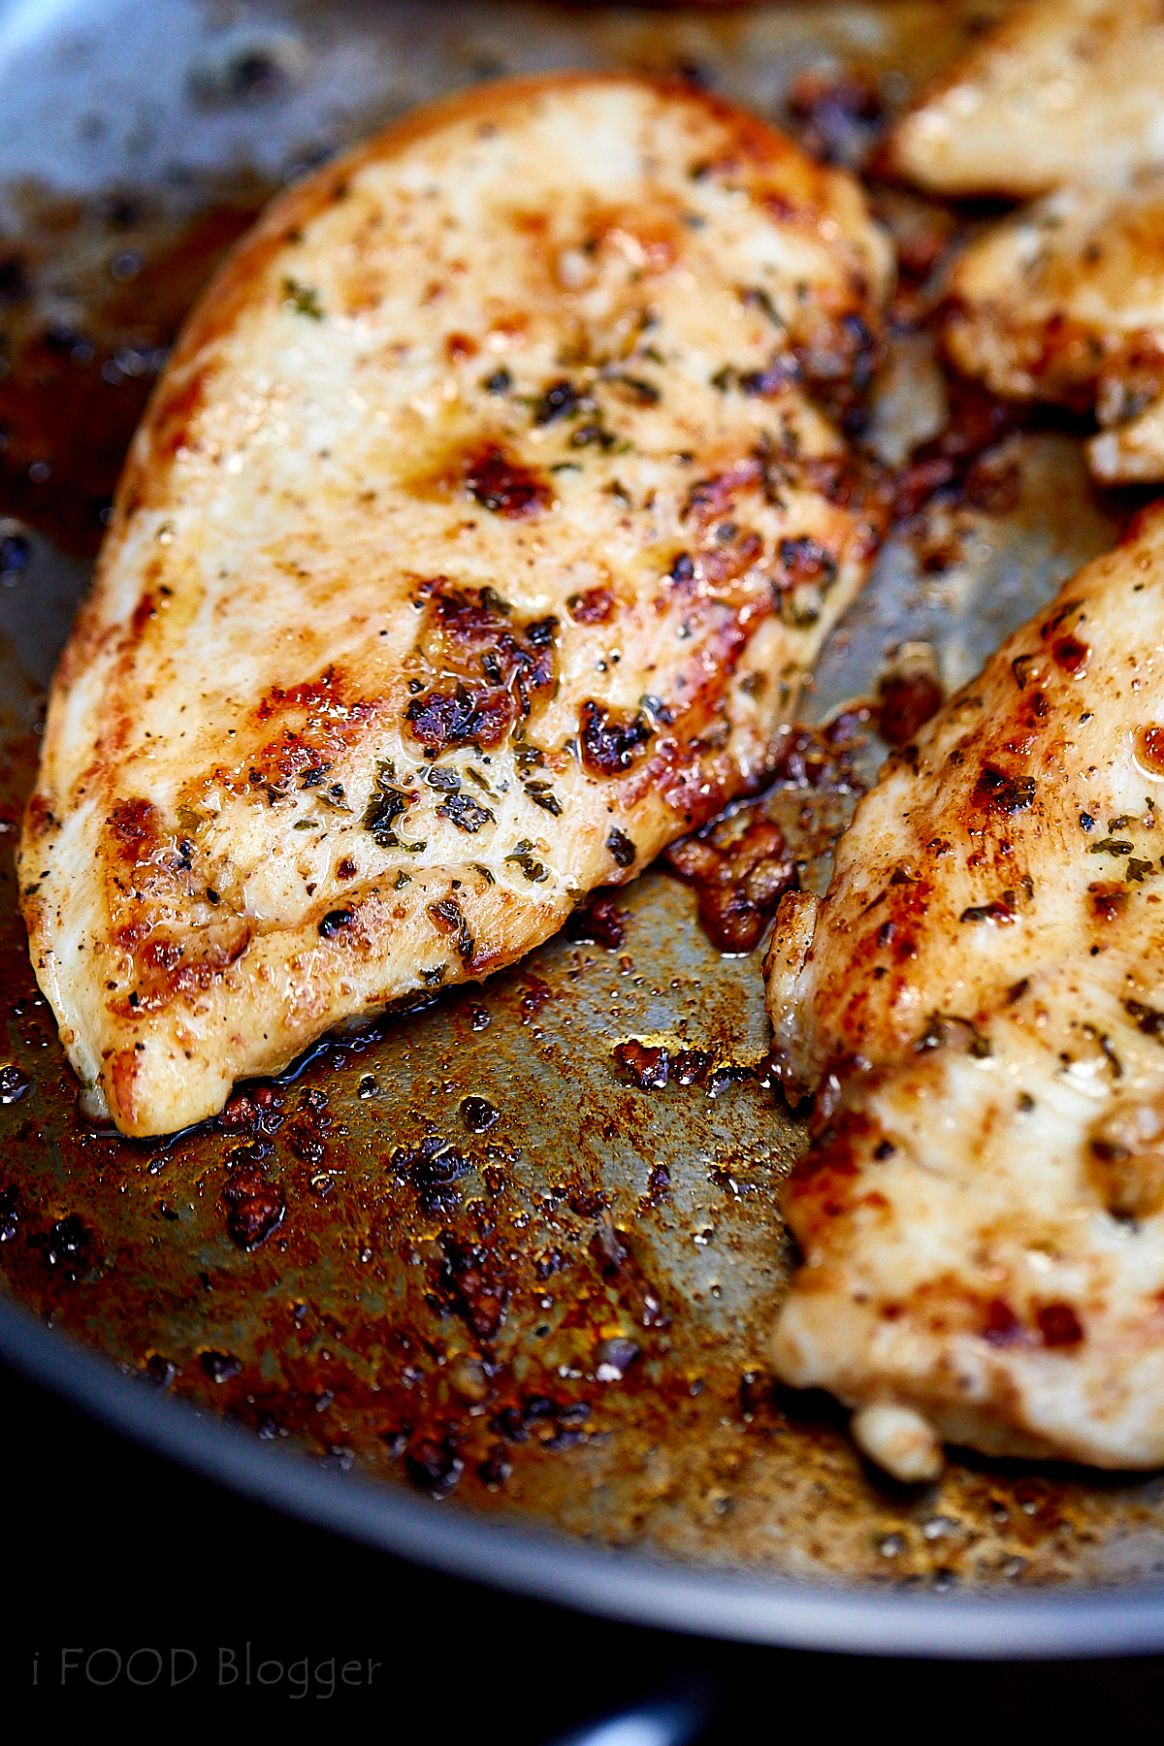 12-Minute Pan-Fried Chicken Breast